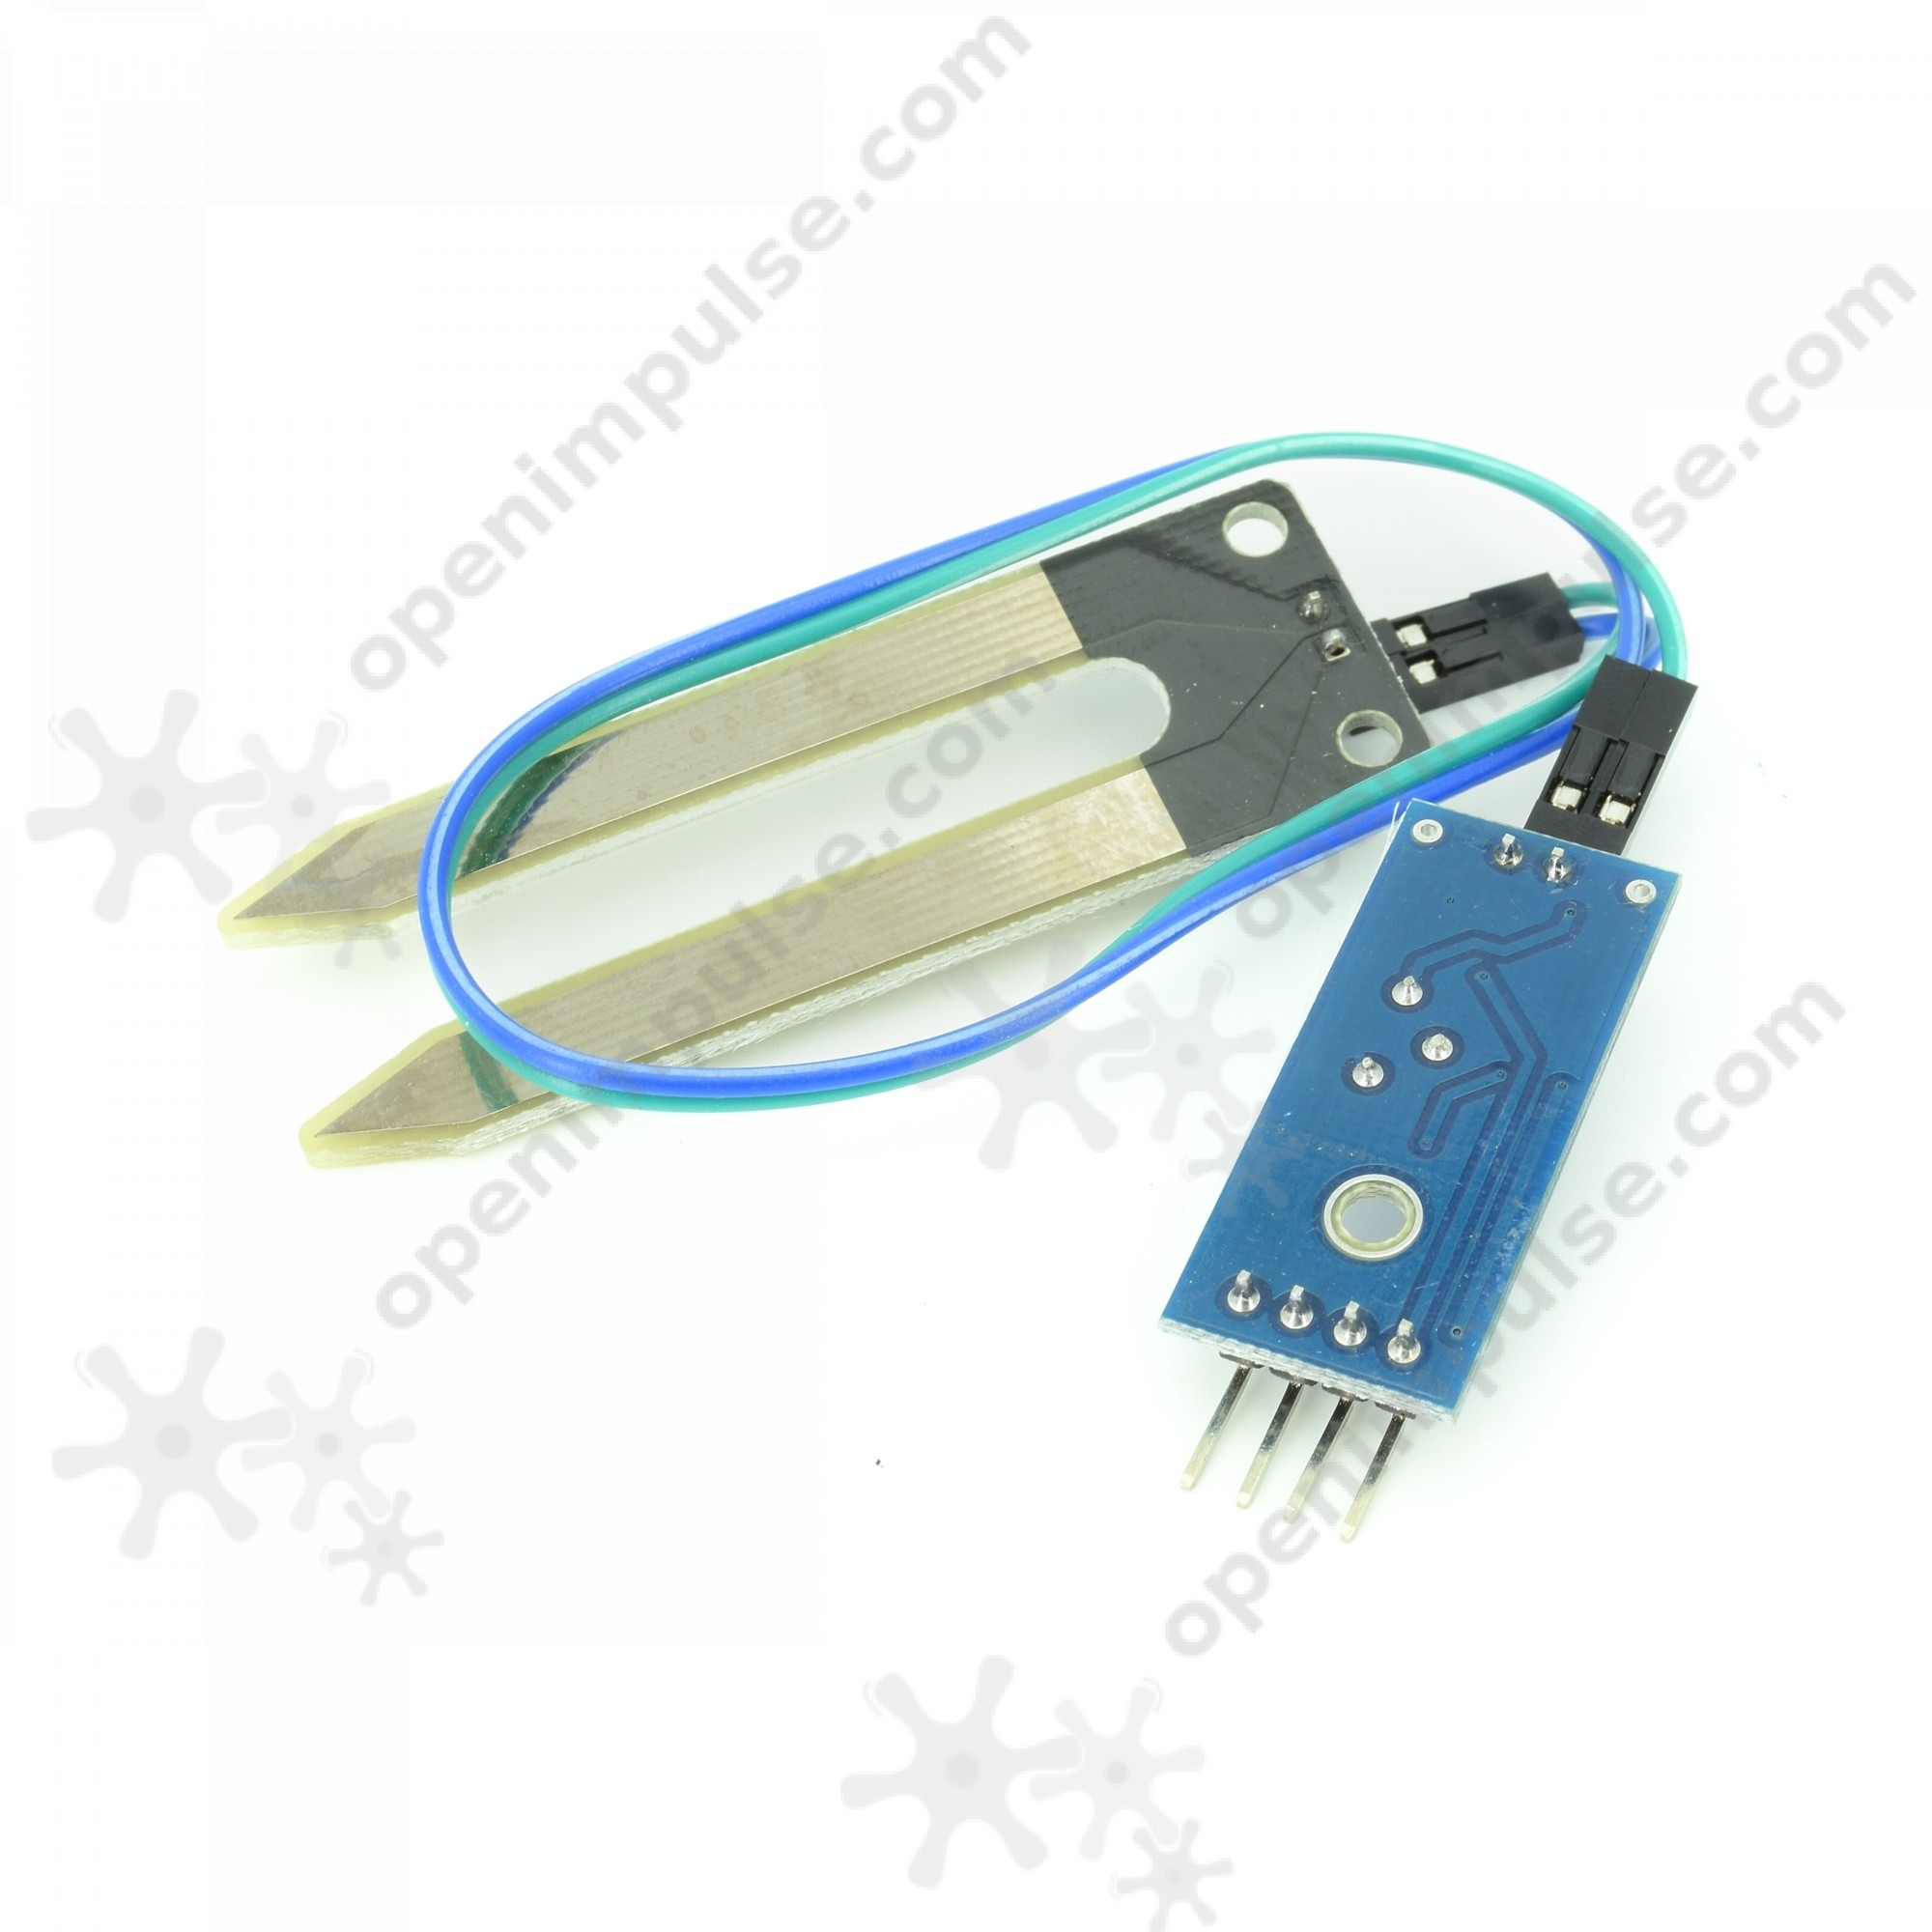 2pcs soil moisture sensor open impulseopen impulse for Soil moisture sensor